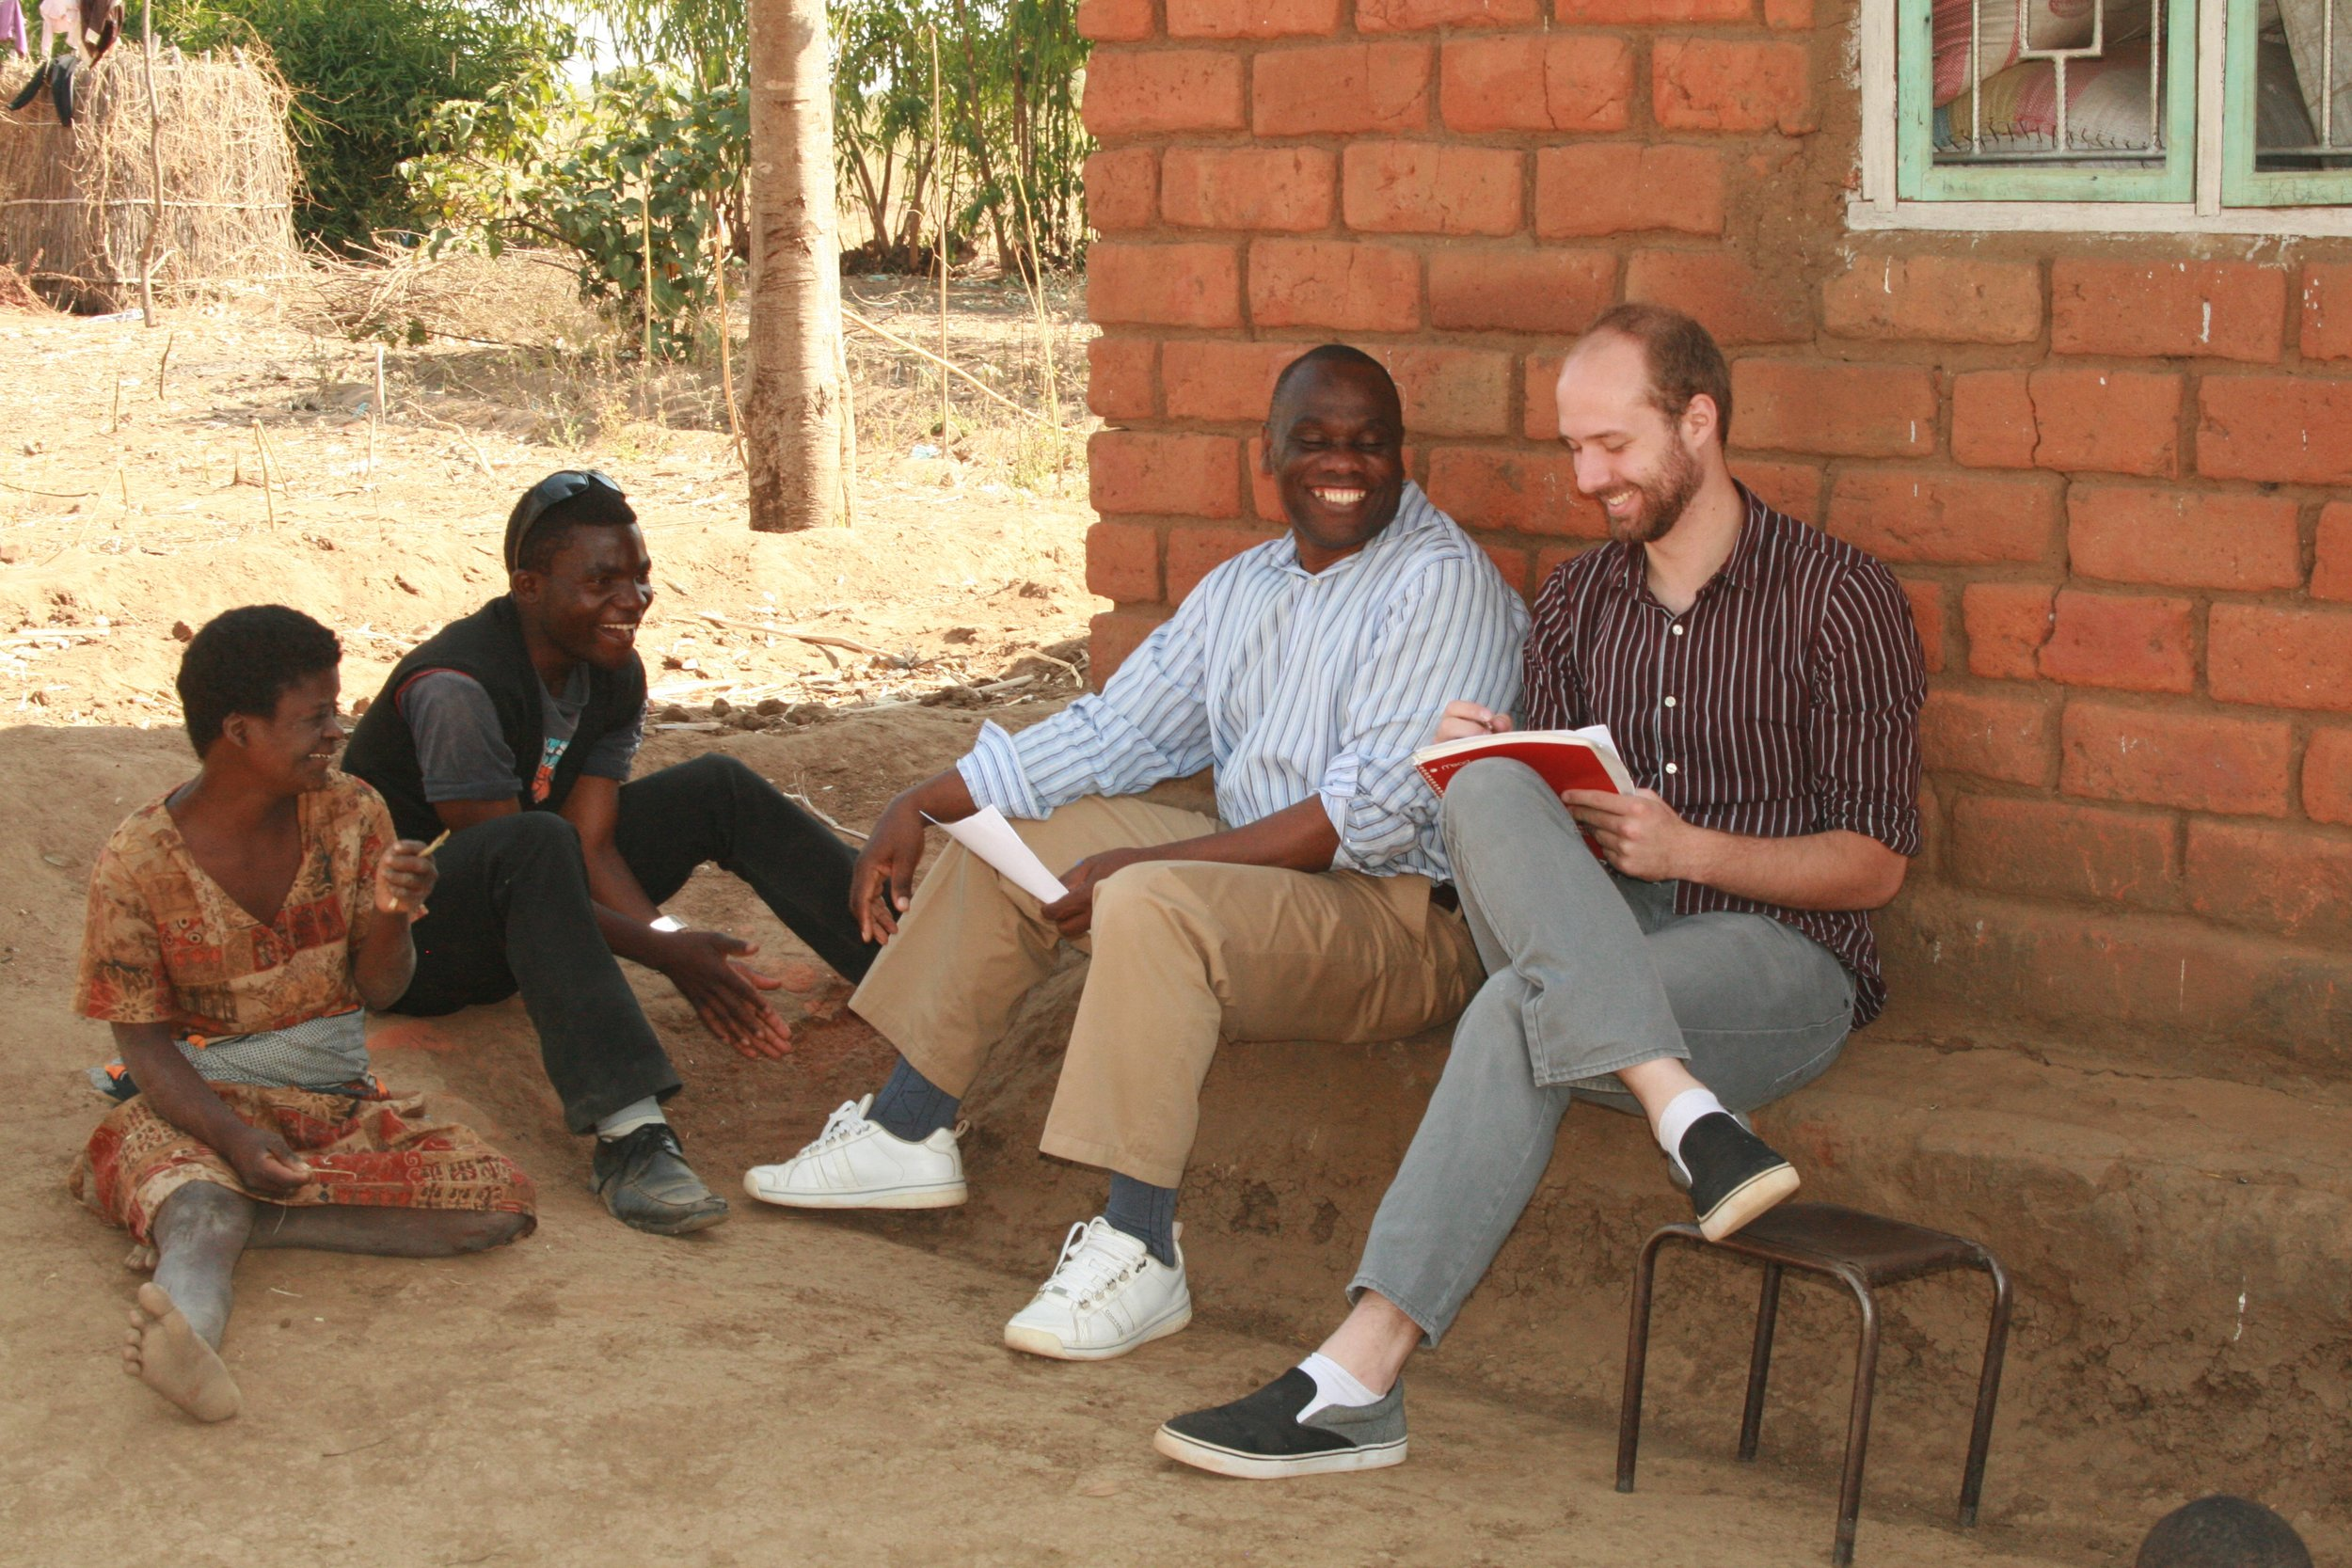 From right to left: Aaron Hauger, Zikani Kaunda, and students being interviewed.